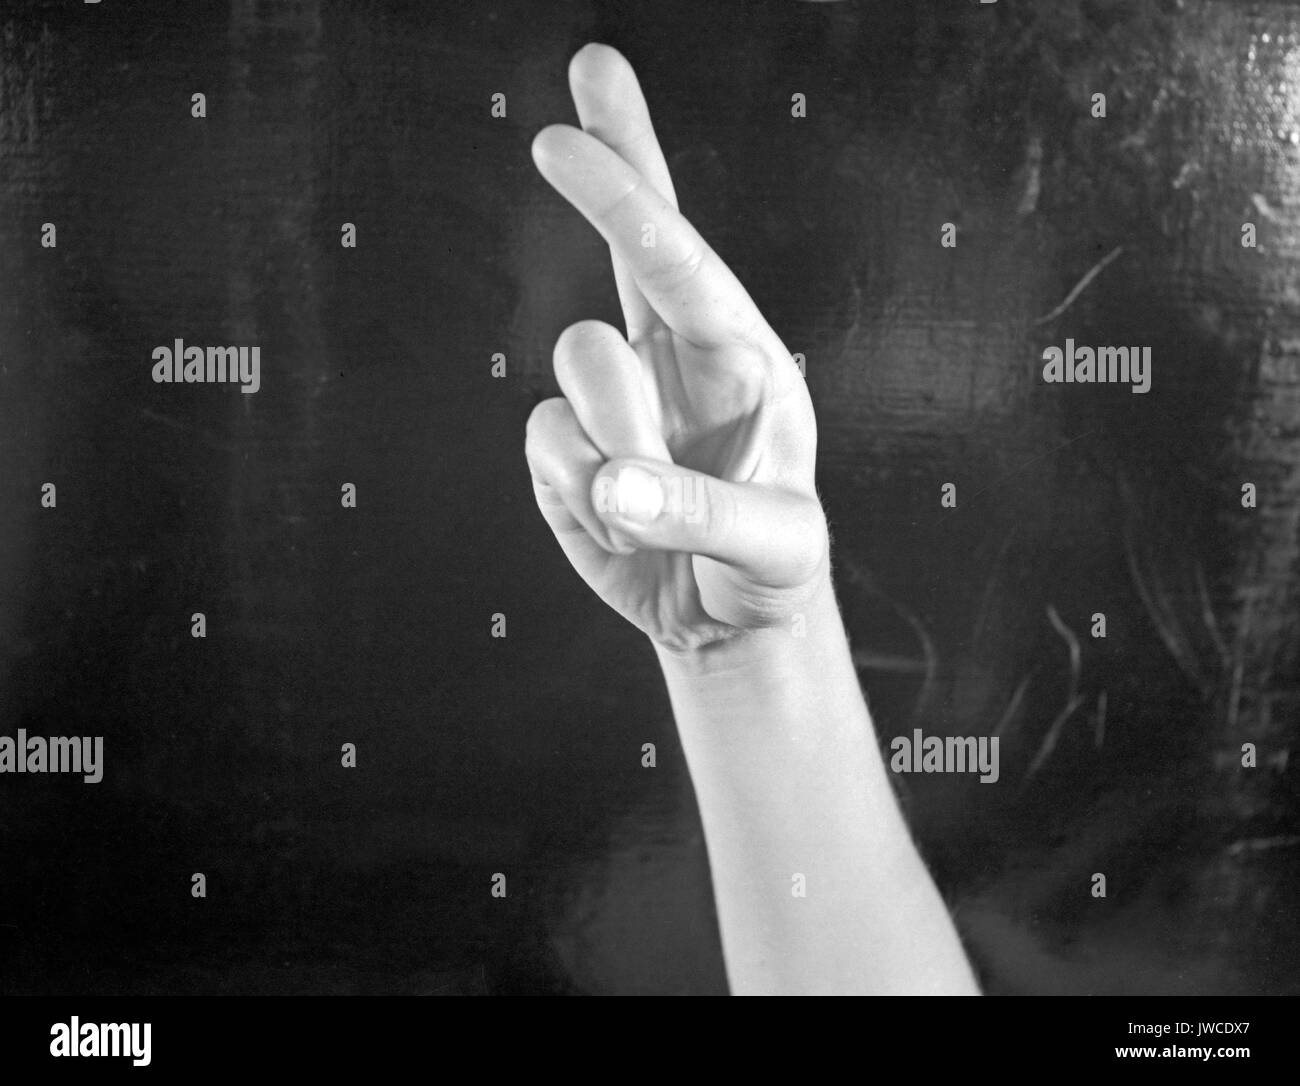 hand on black background fingerspelling the letter r in sign language